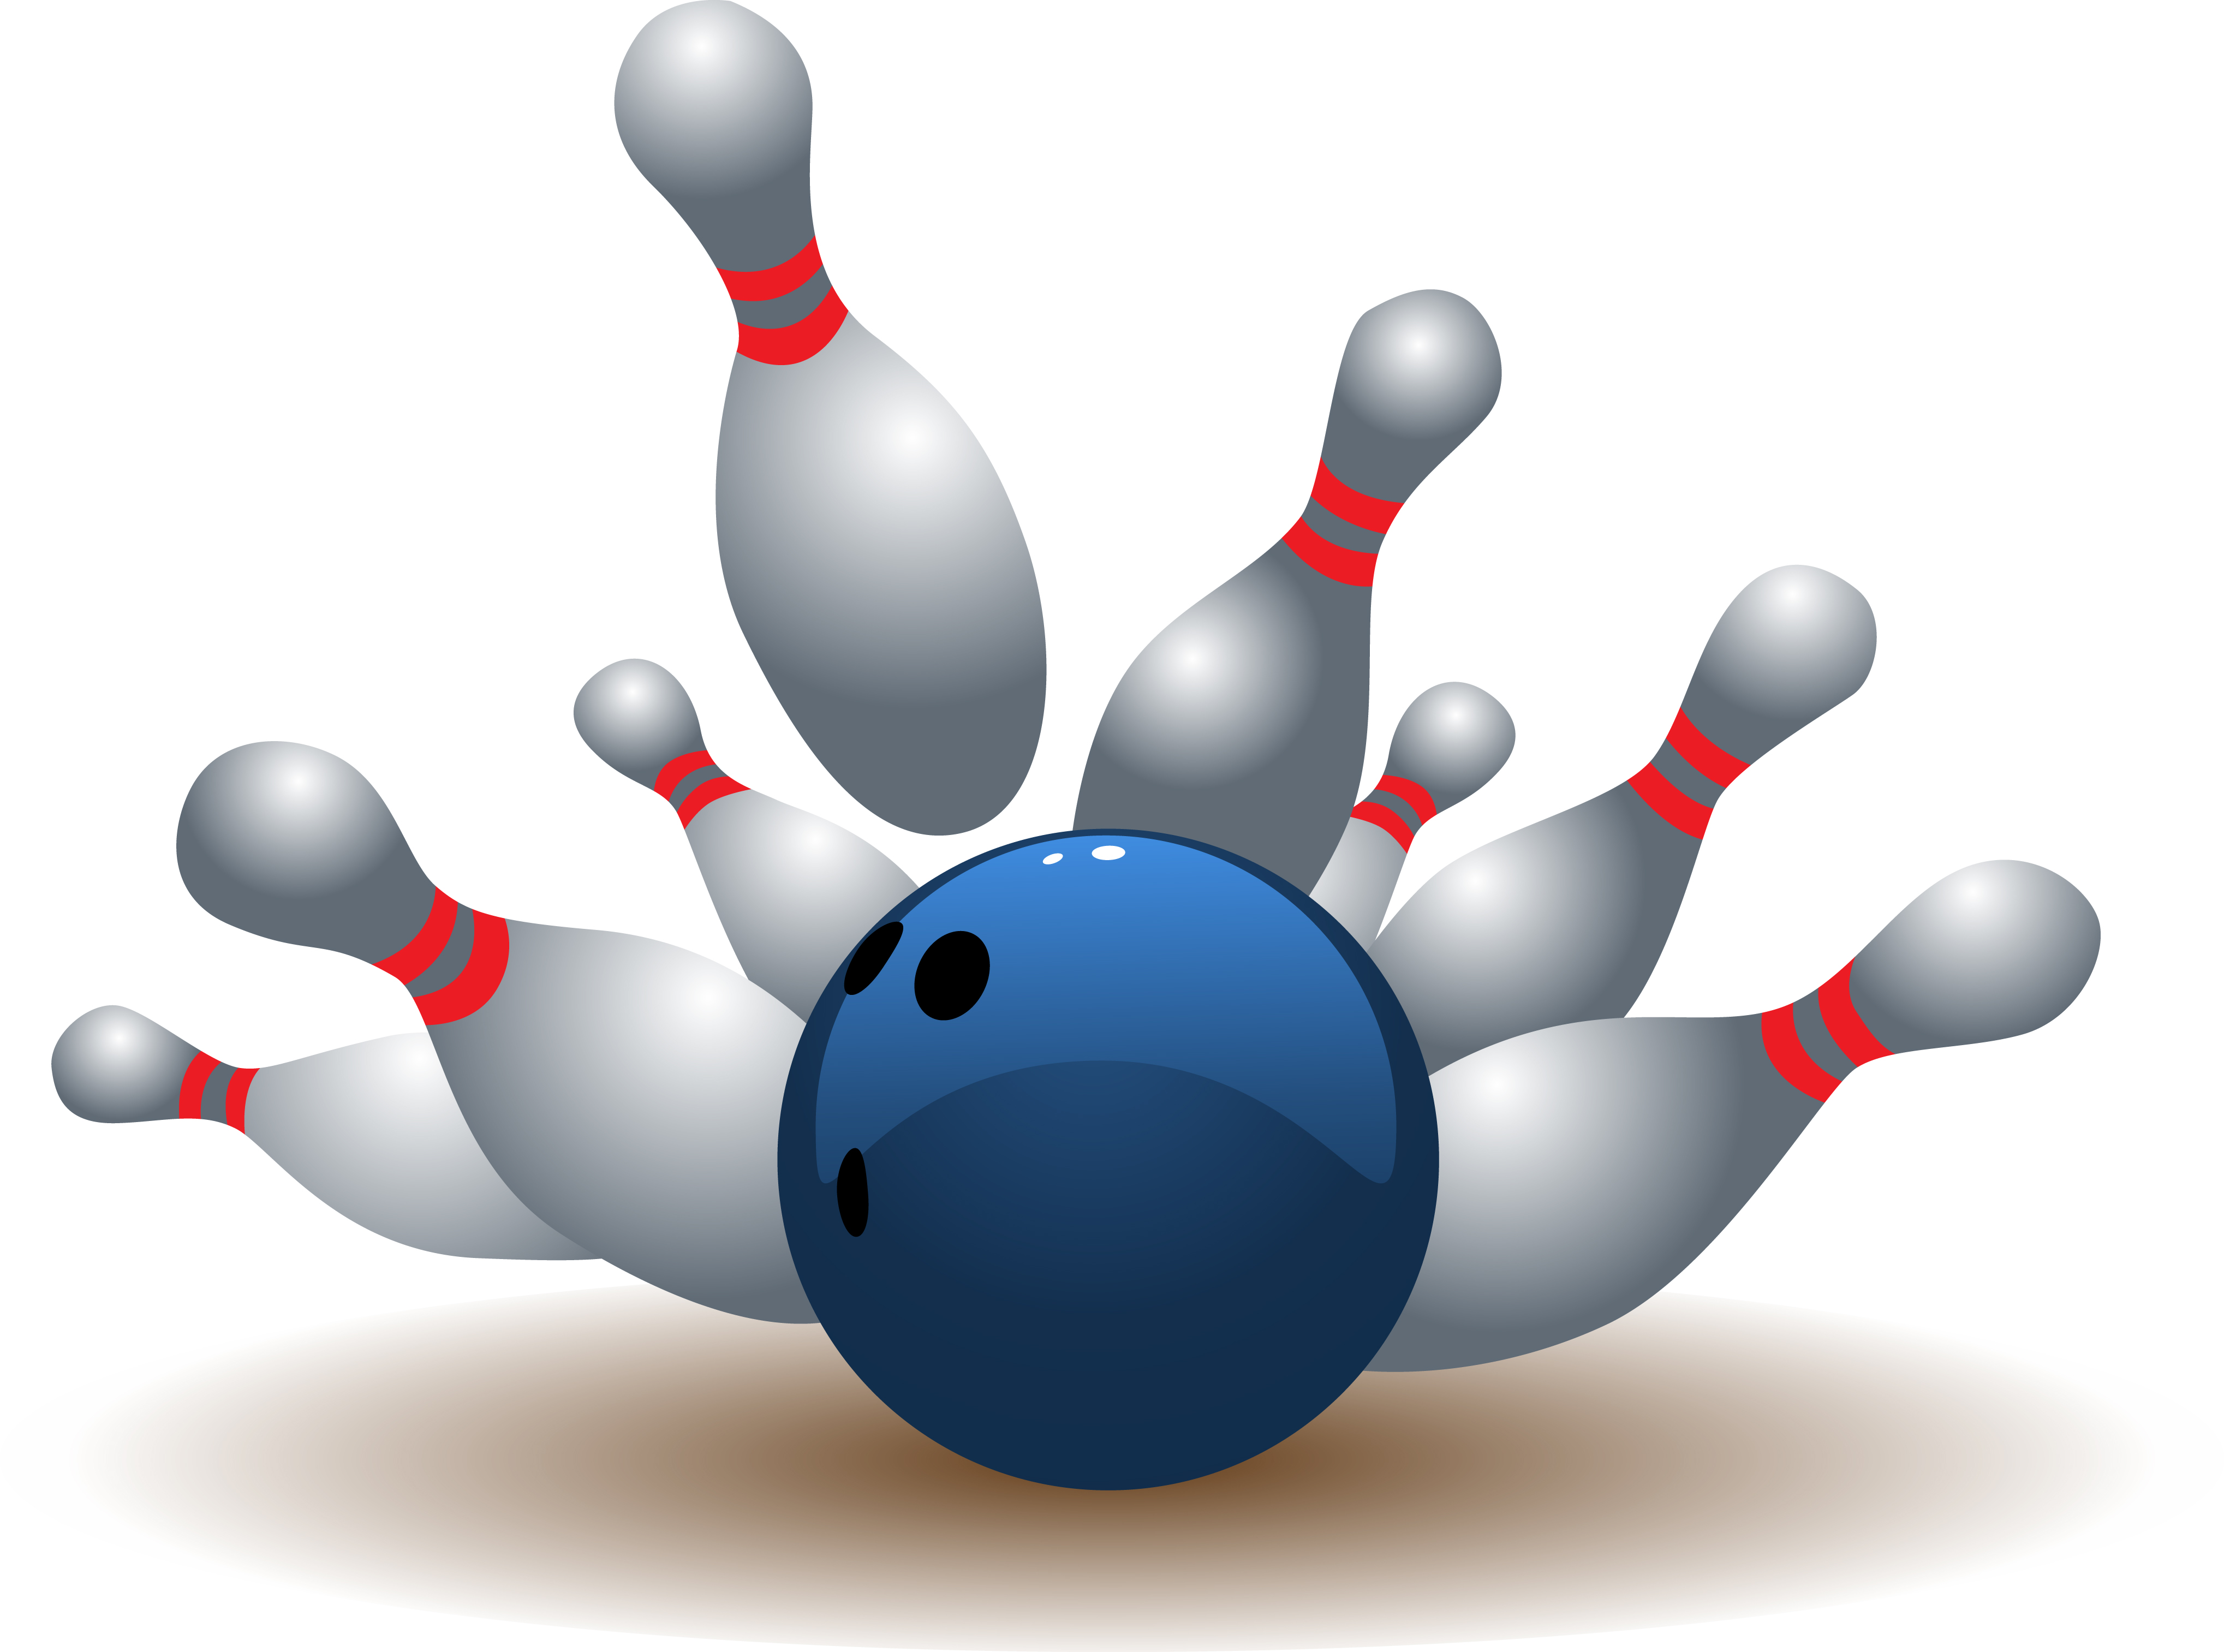 Logo clip art library. Bowling clipart event